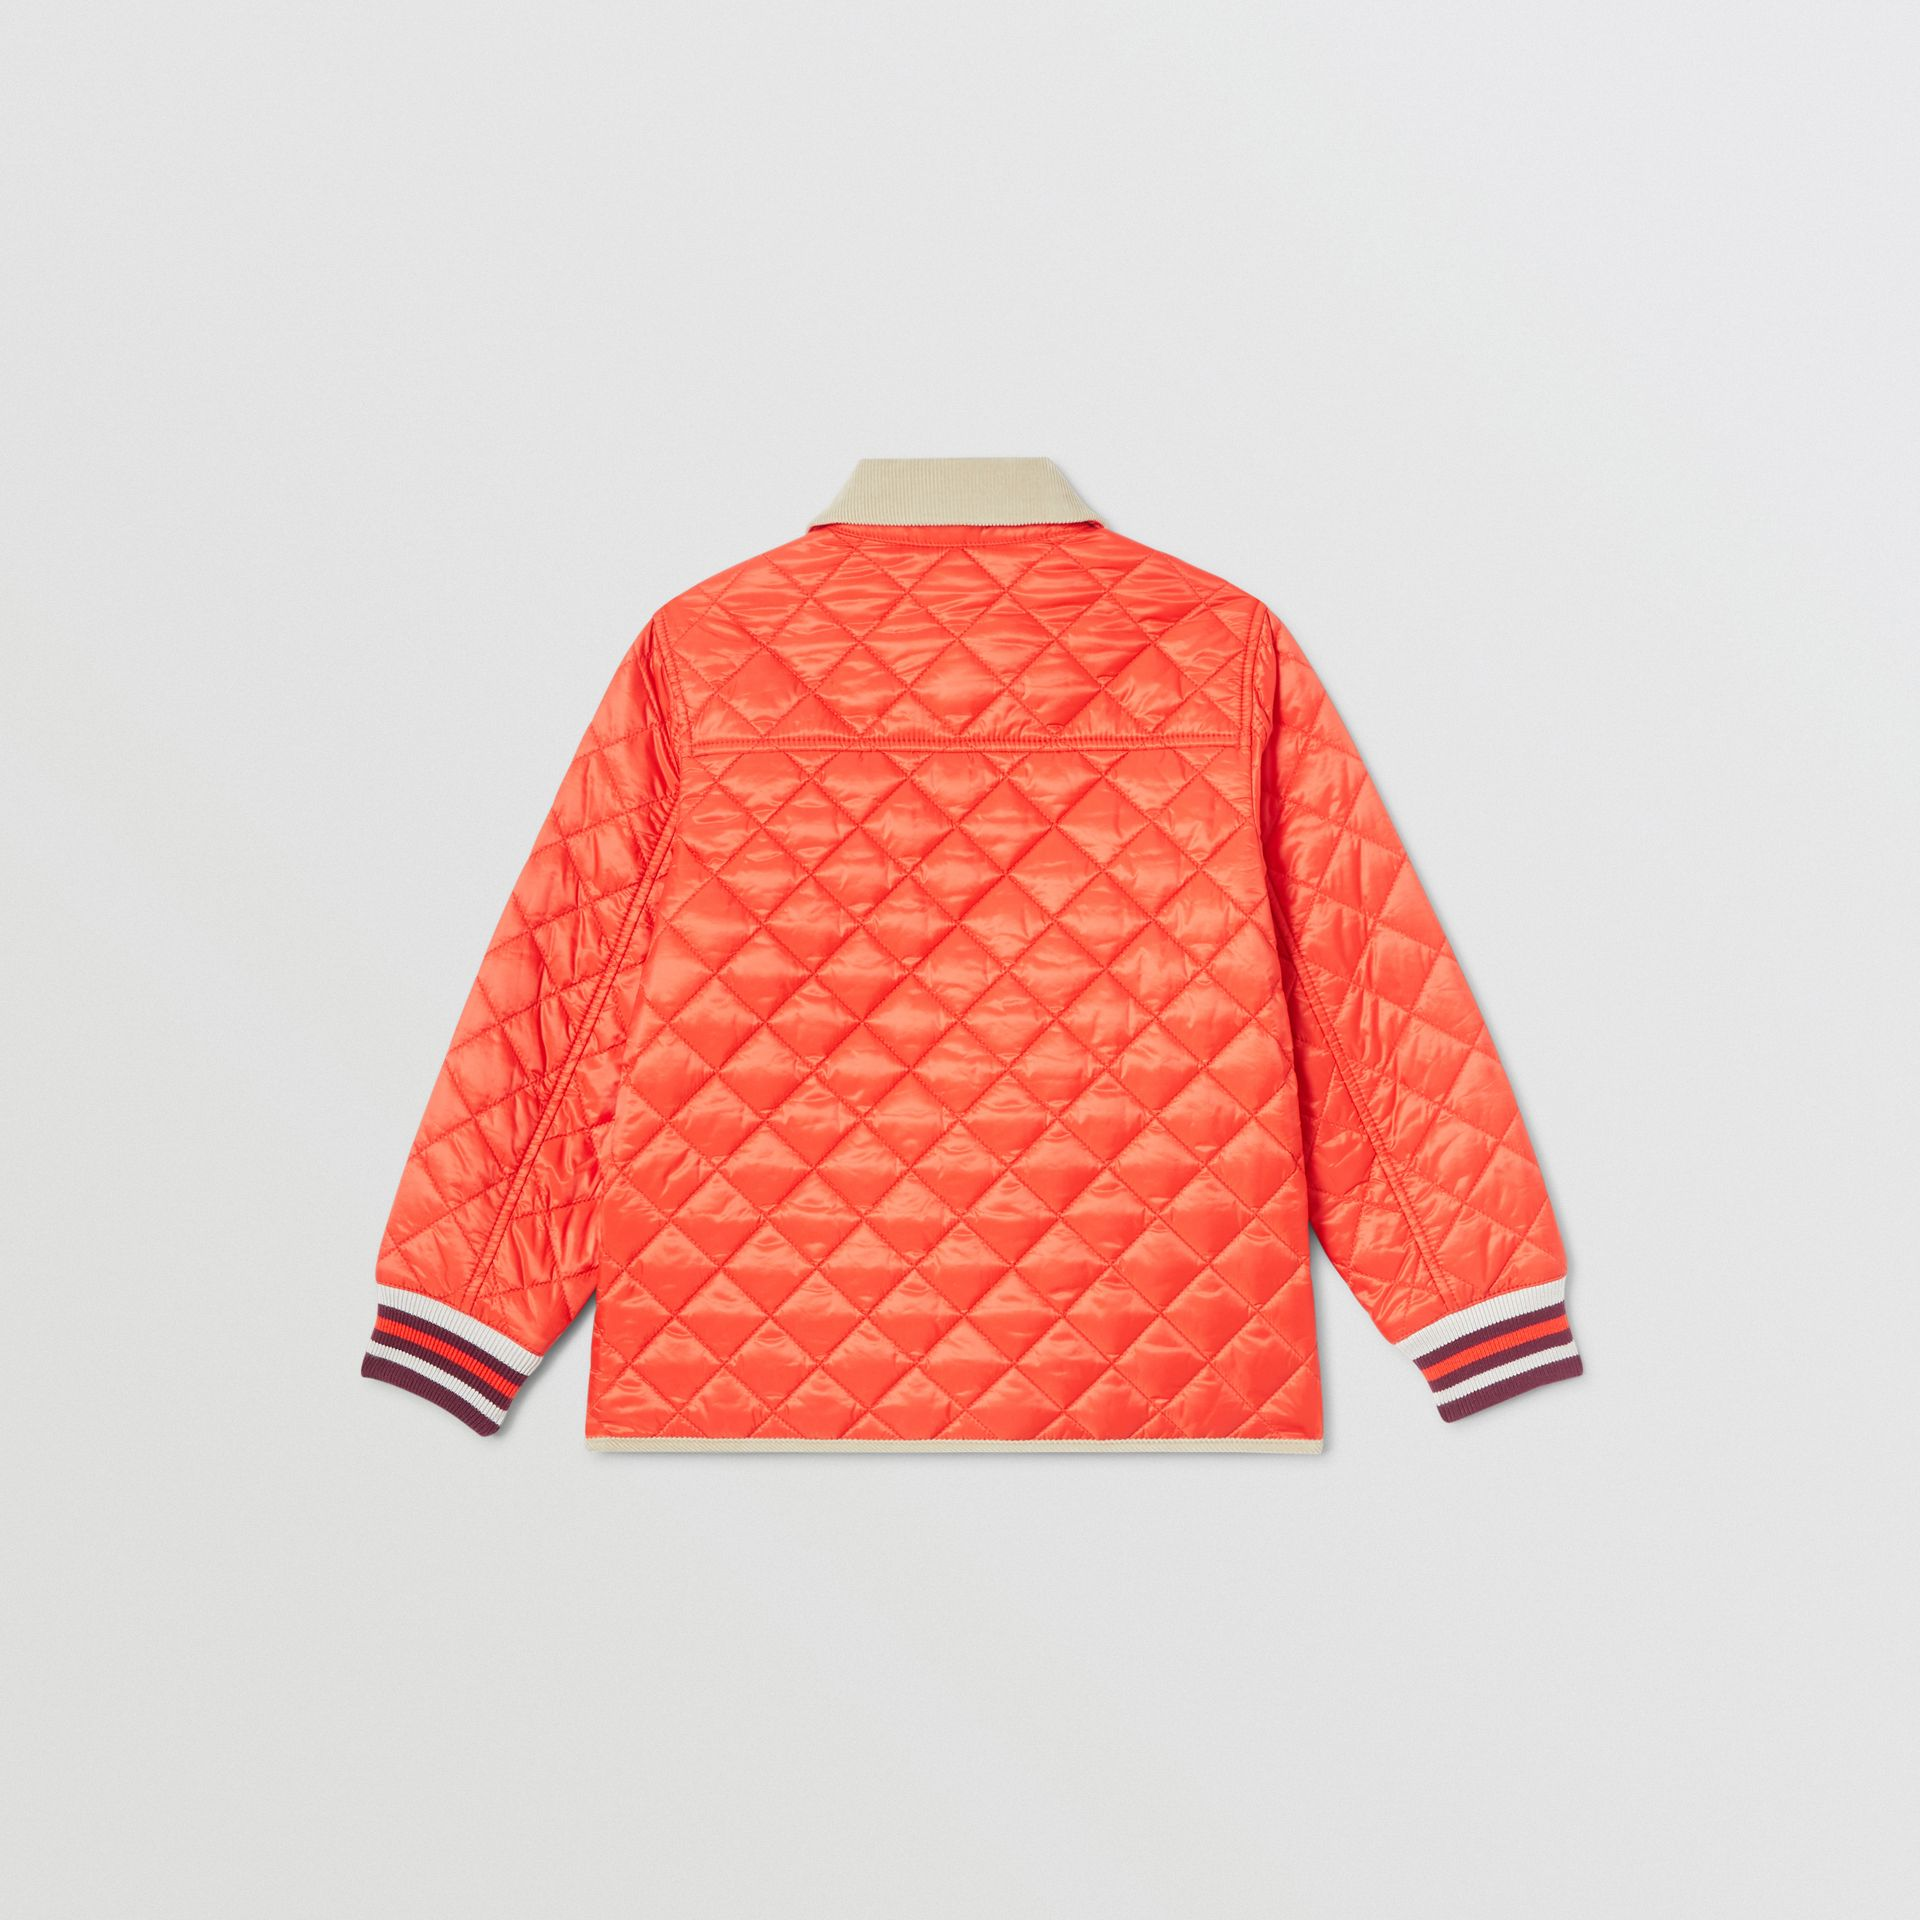 Corduroy Trim Lightweight Diamond Quilted Jacket in Bright Coral Orange | Burberry - gallery image 3